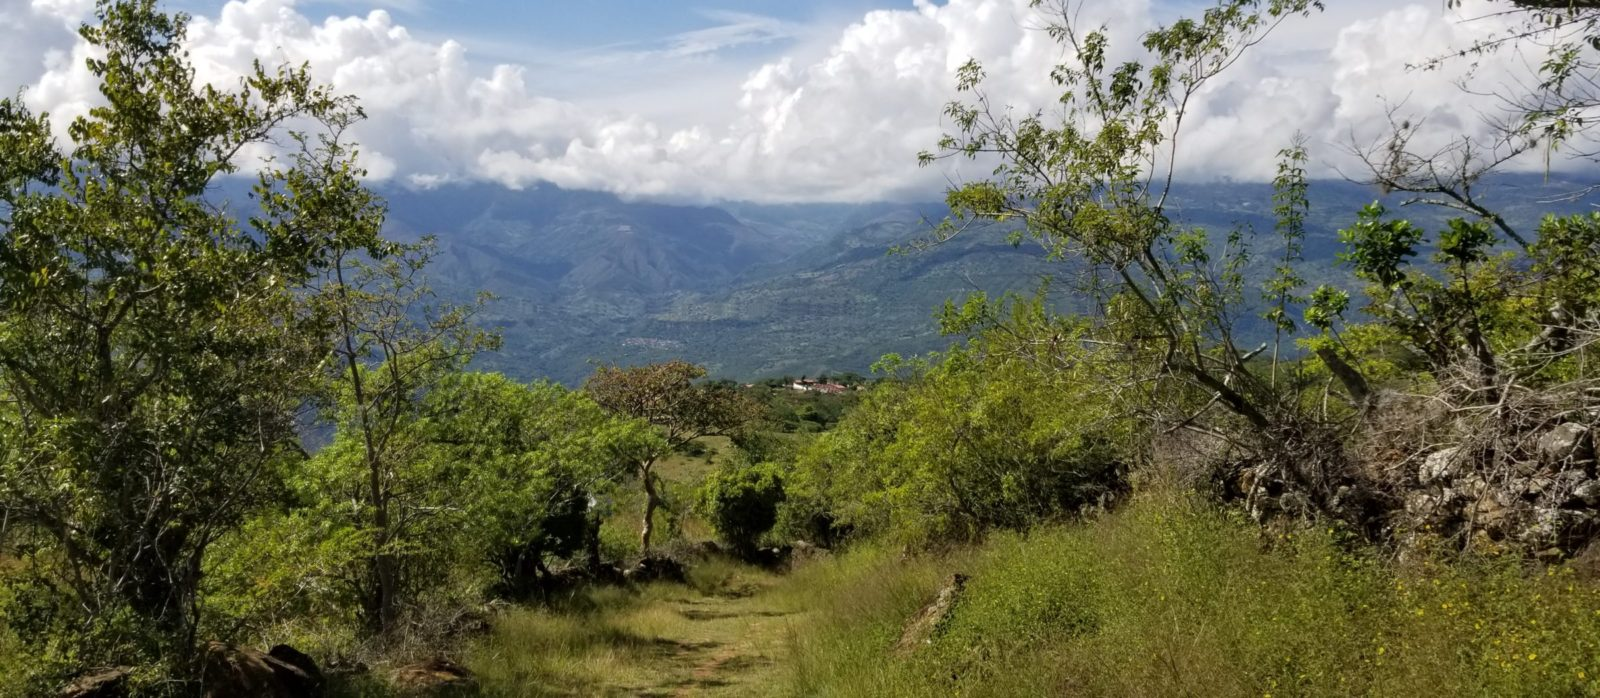 Guane in the distance during our hike of El Camino Real